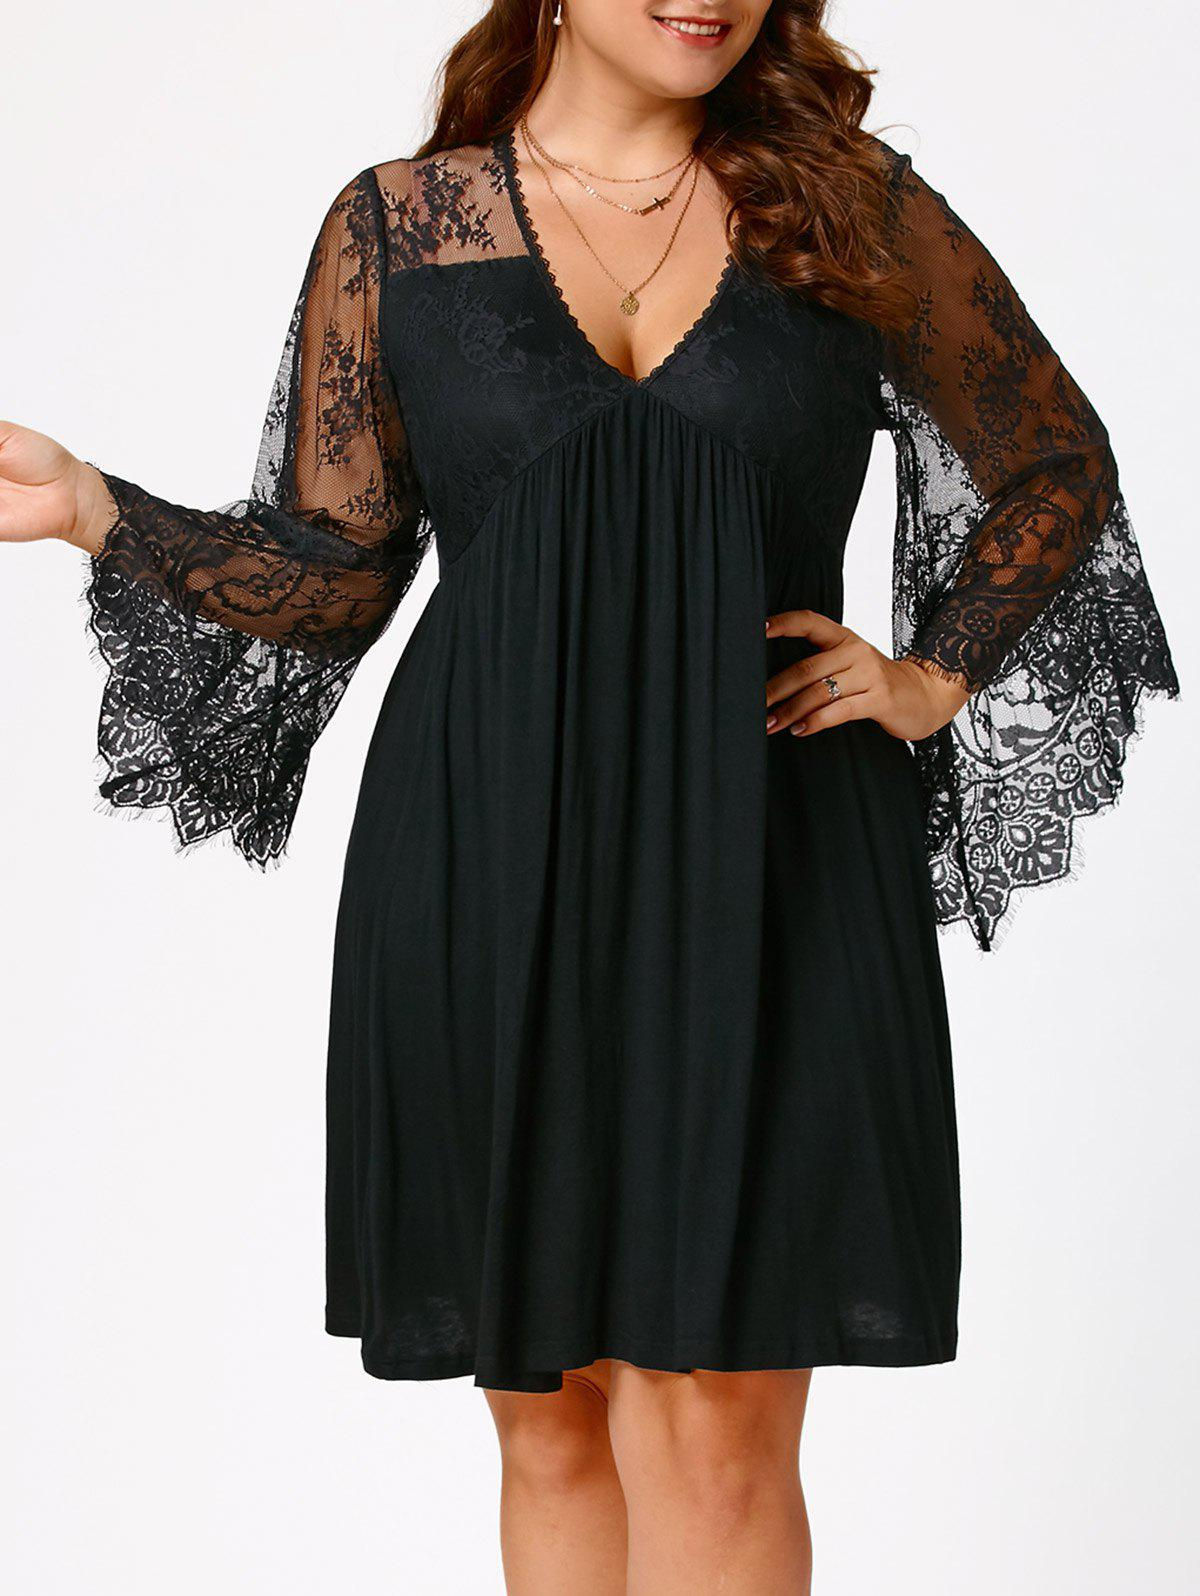 Empire Waist Plus Size Tunic Dress - BLACK 4XL